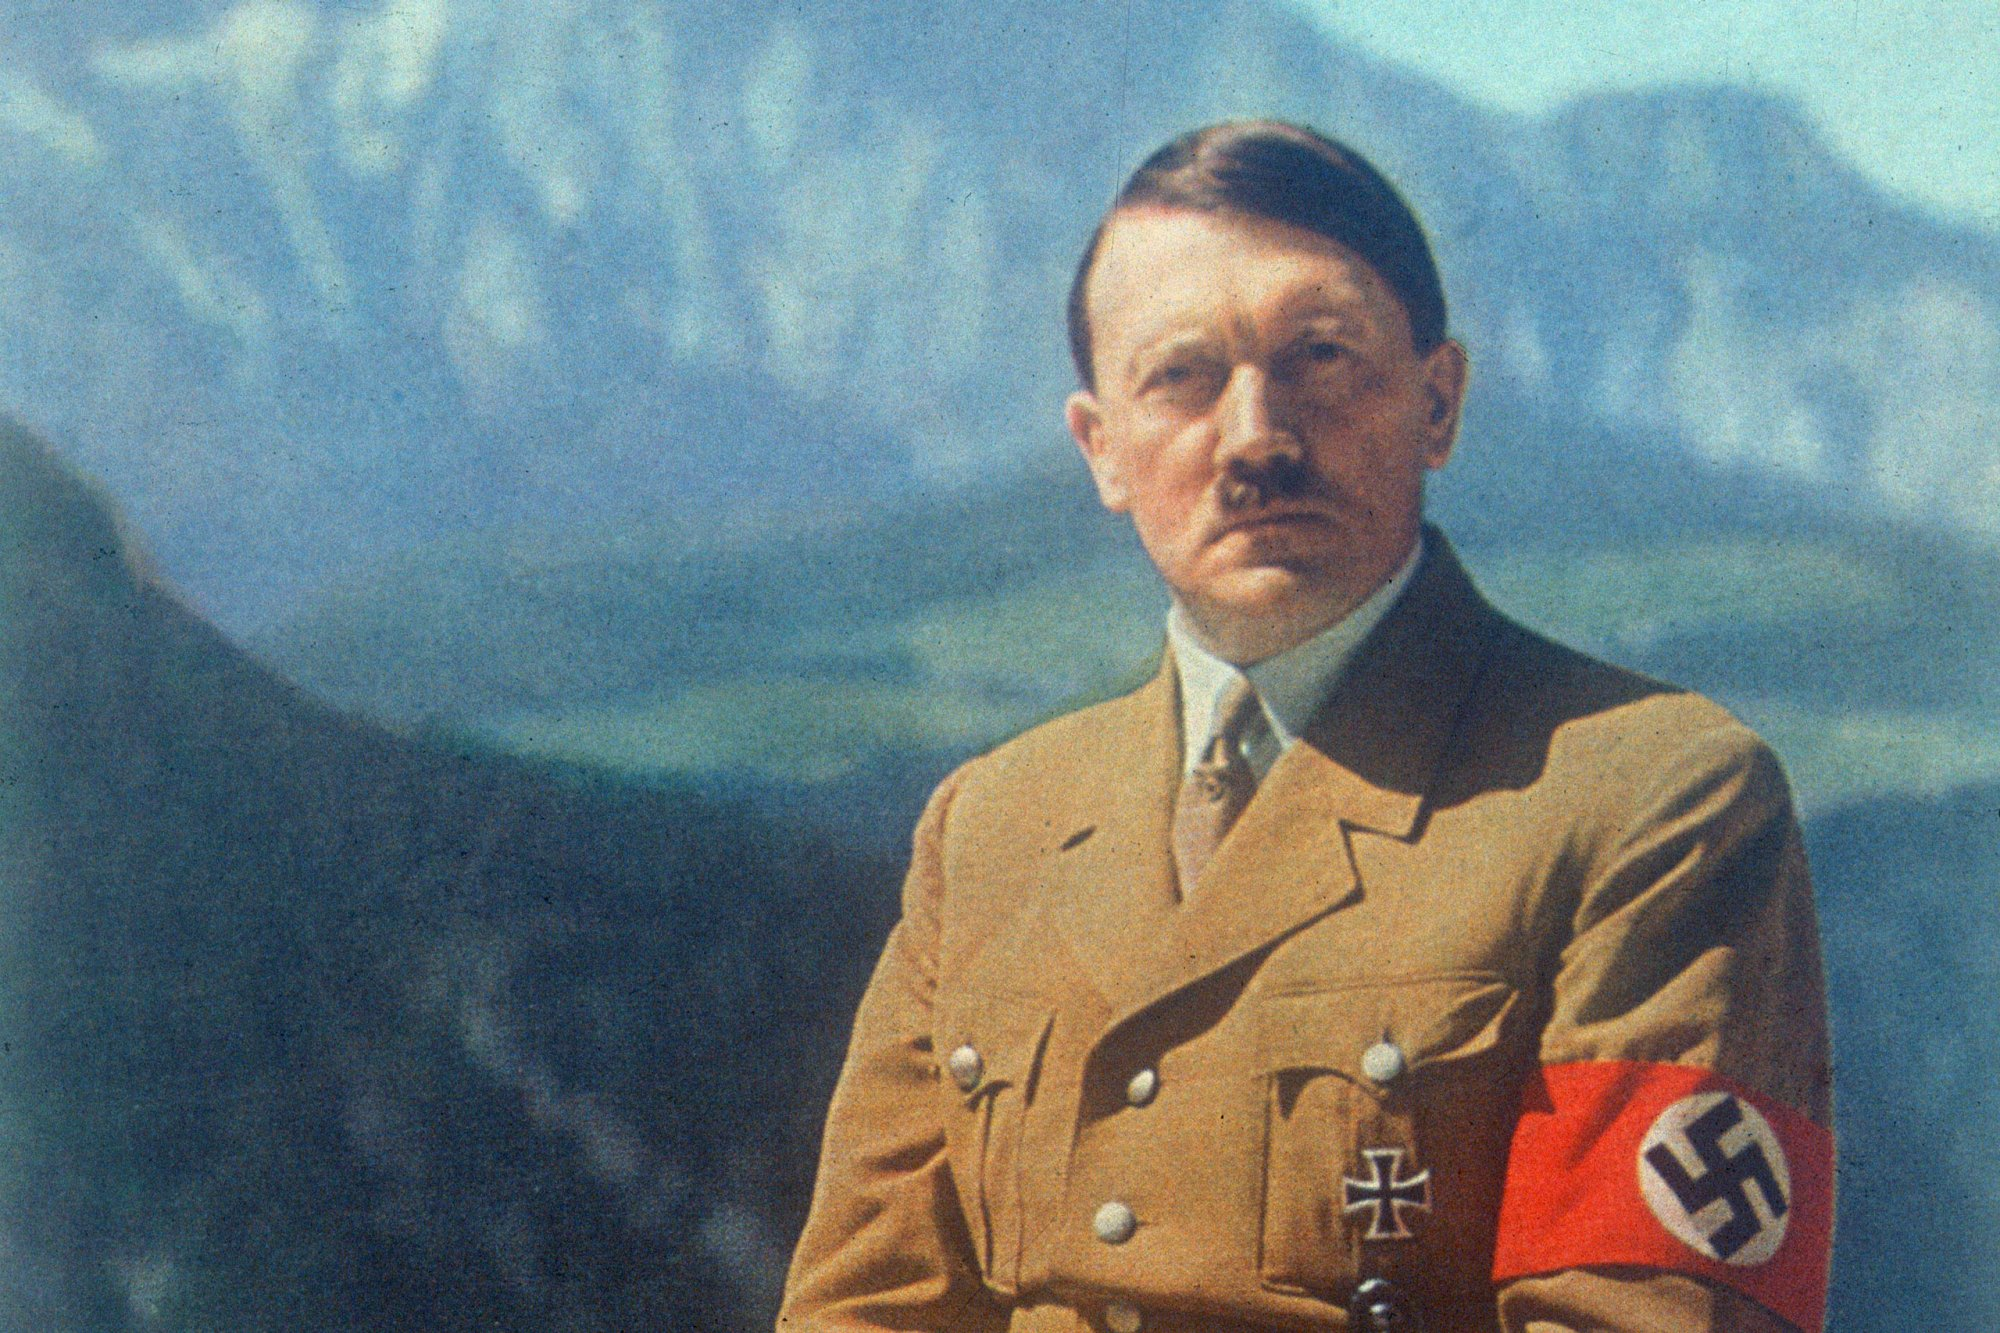 adolph hitler Adolf hitler, the leader of the nazi party, the architect of the holocaust and the embodiment of evil.